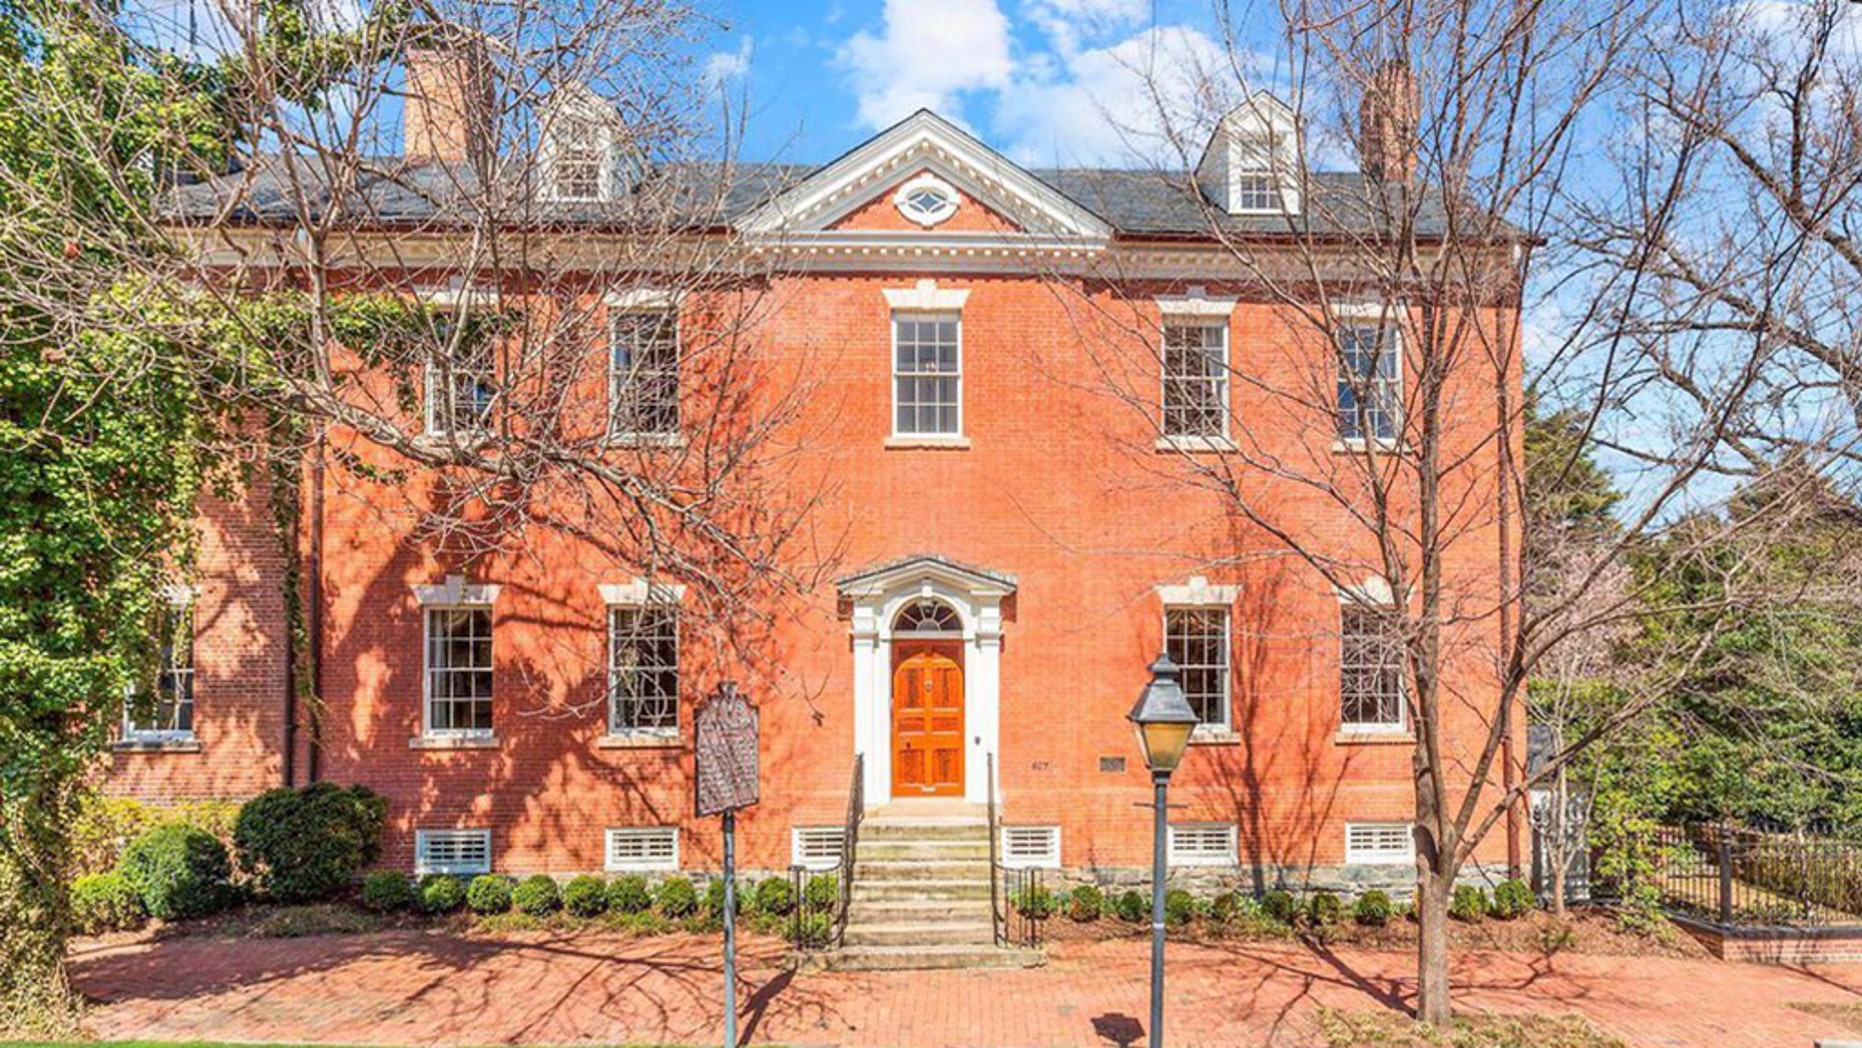 Built in 1795, the historic home is back聽on the market聽for $5.6 million. It was聽available聽last year for $8.5 million.